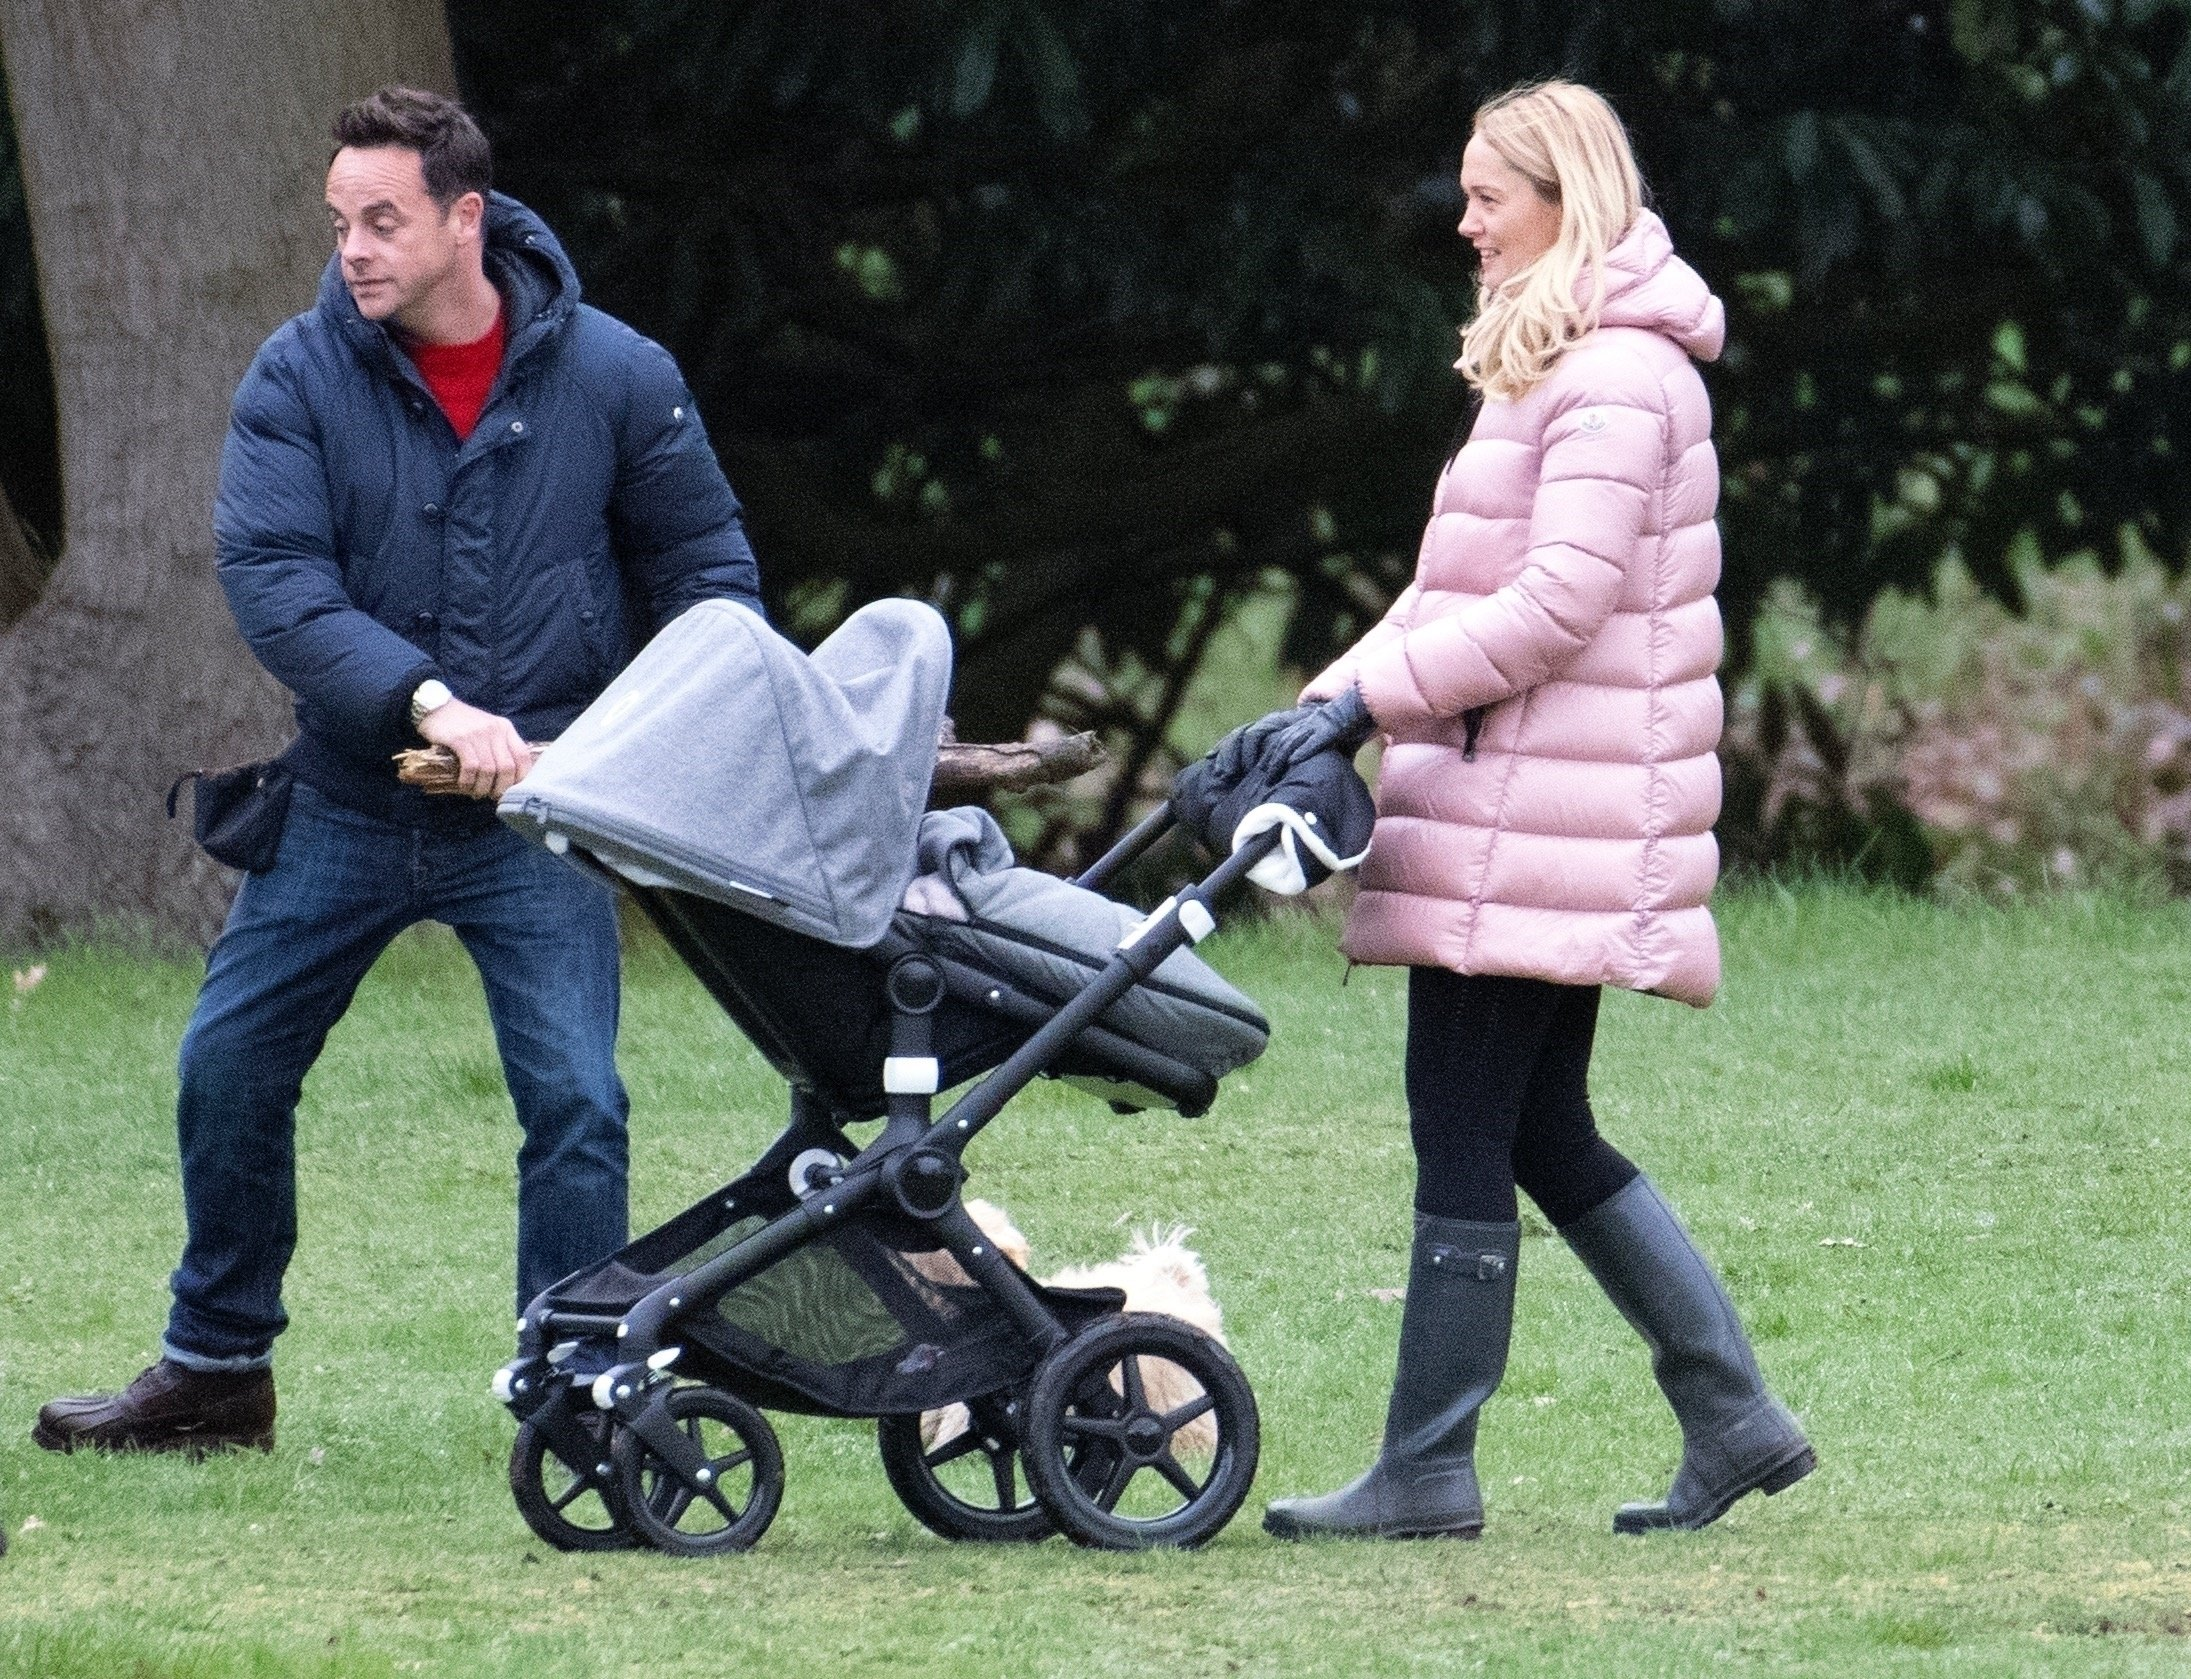 BGUK_1511823 - *PREMIUM-EXCLUSIVE* LONDON, UNITED KINGDOM - *MUST CALL FOR PRICING* *STRICT WEB EMBARGO UNTIL 16:50 HRS ON 10/03/19* Ant McPartlin and girlfriend Anne-Marie Corbett seen kissing in the park while out with Declan Donnelly's wife Ali Astall walking their dogs Pictured: Ant McPartlin, Anne-Marie Corbett BACKGRID UK 9 MARCH 2019 UK: +44 208 344 2007 / uksales@backgrid.com USA: +1 310 798 9111 / usasales@backgrid.com *UK Clients - Pictures Containing Children Please Pixelate Face Prior To Publication*